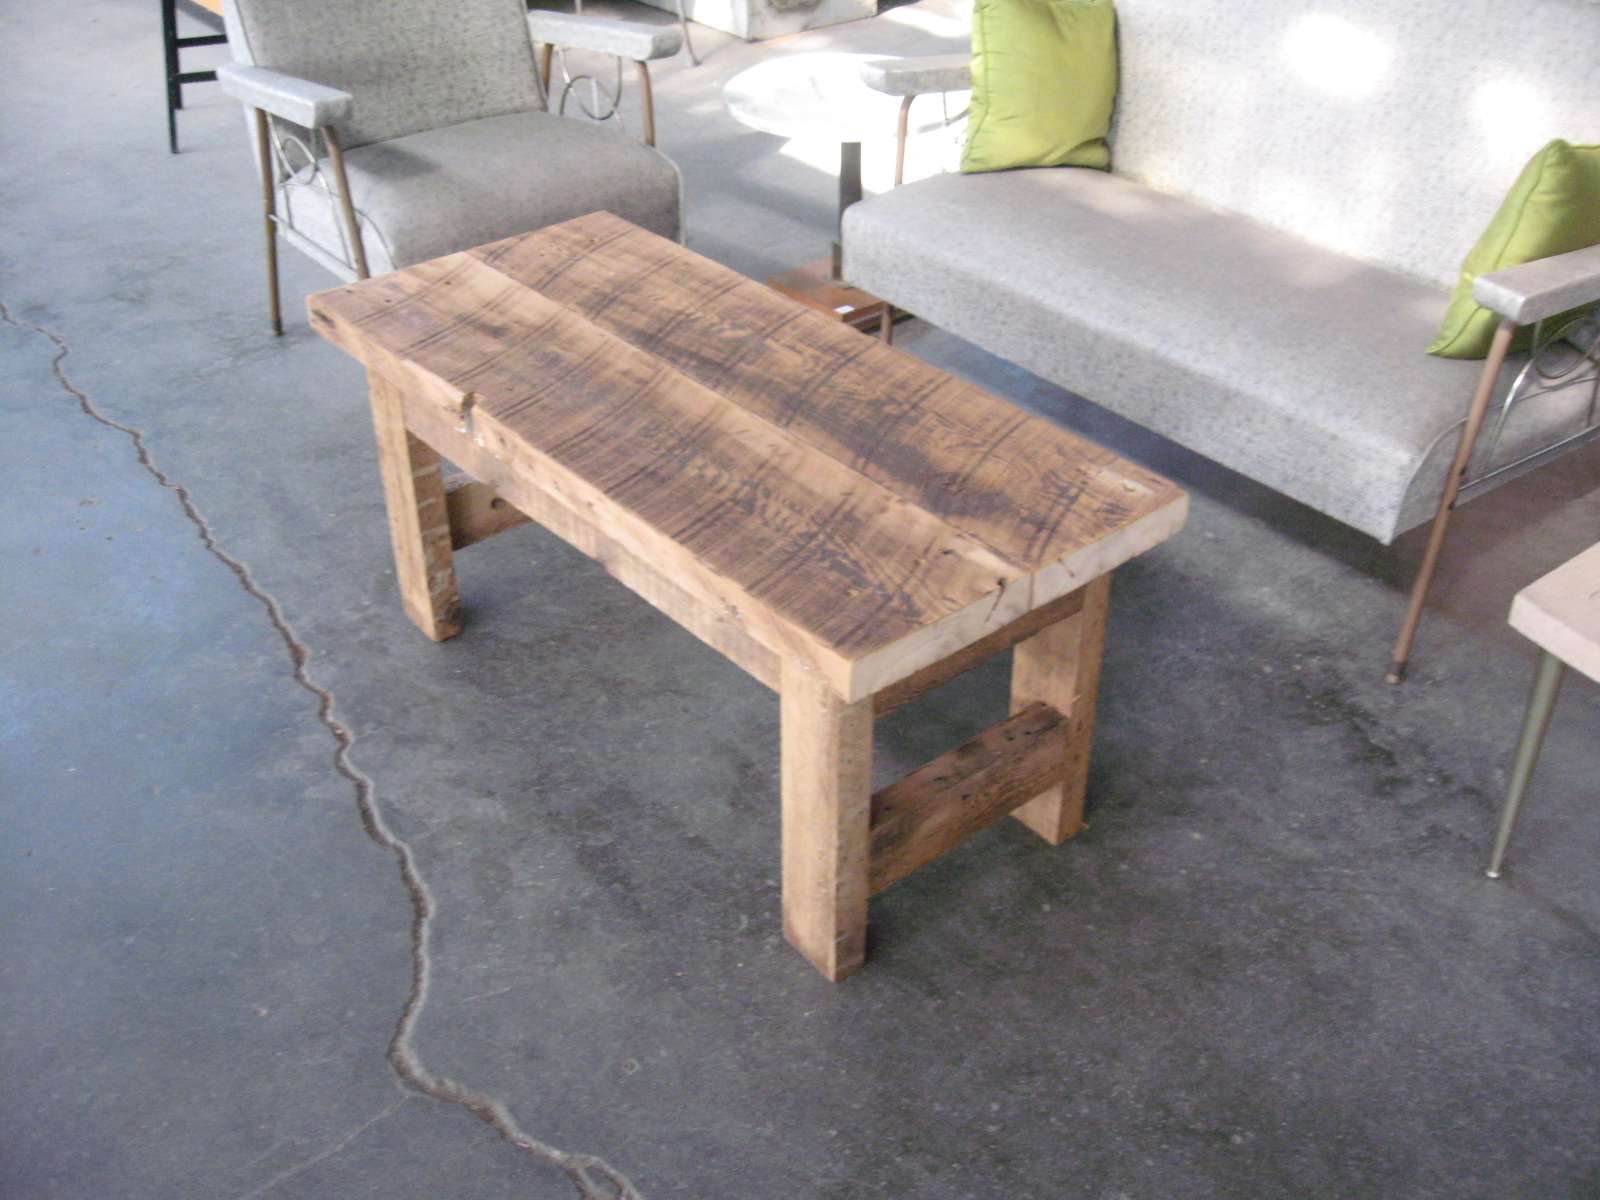 Build Your Own Coffee Table Saturday Sept. 10th